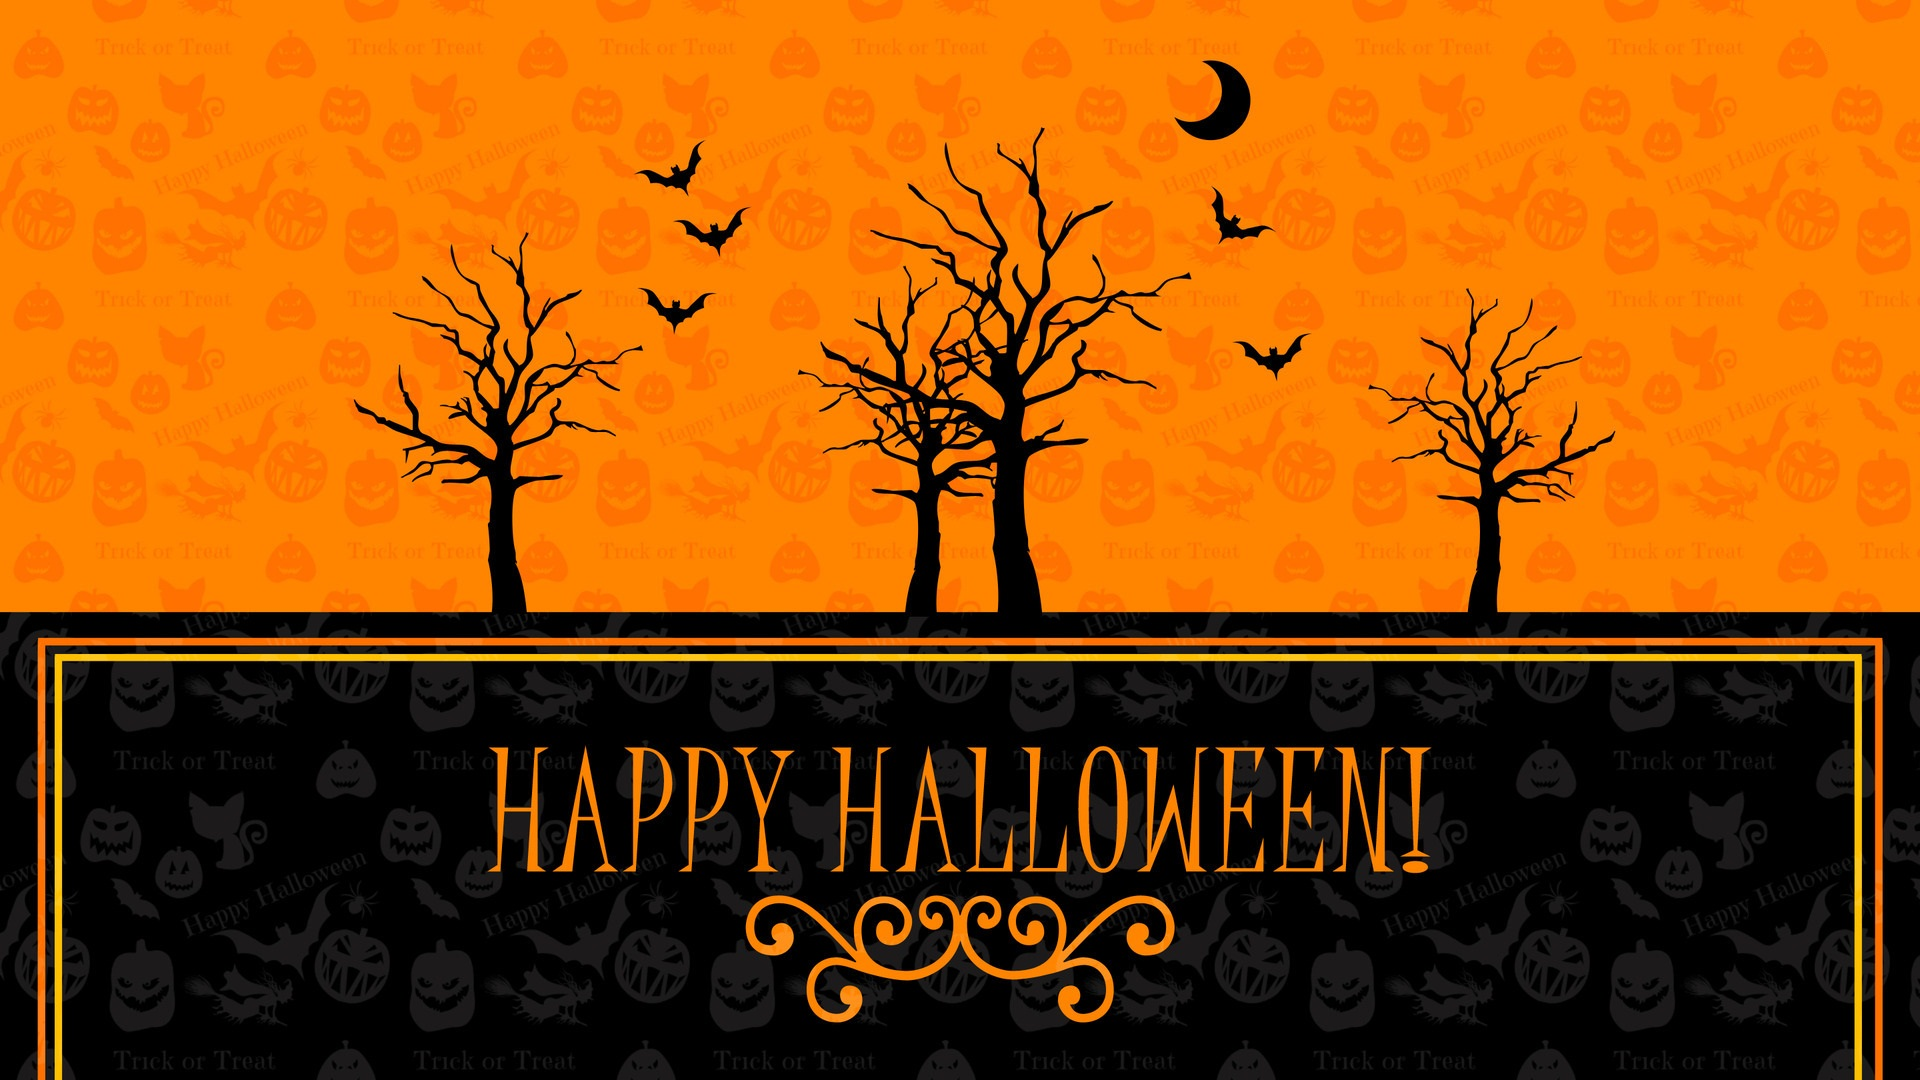 see you tonight at the halloween party! – welcome to the newbury